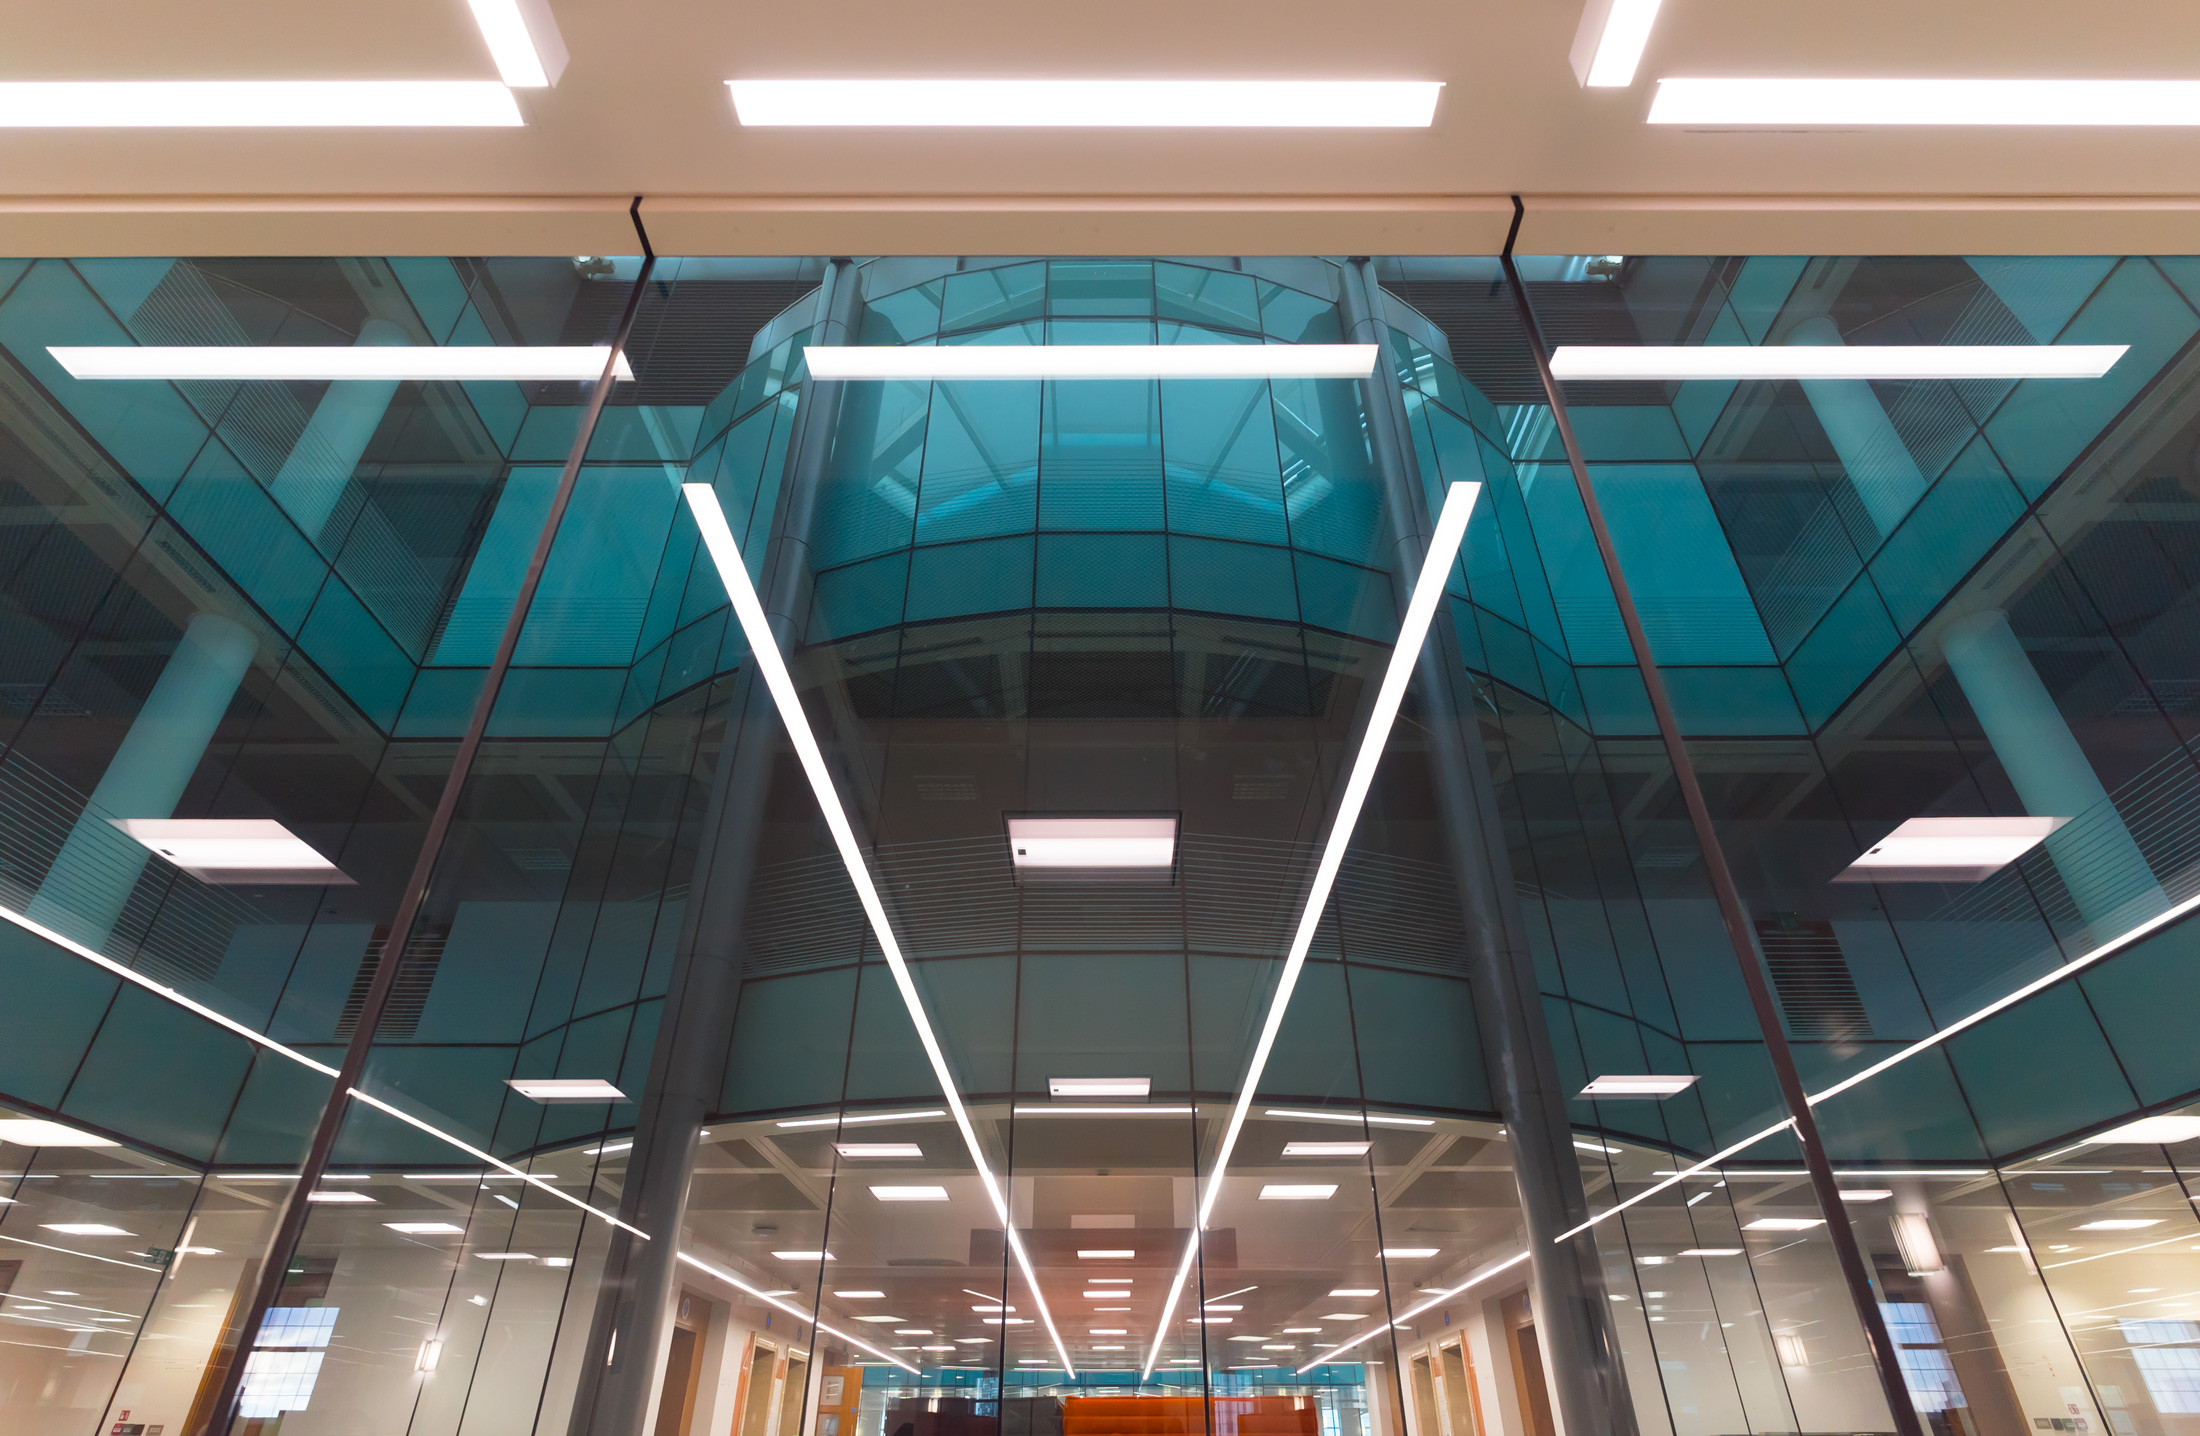 A CUSTOM SOLUTION. - The individual floor plan and design of each floor were calling for a custom solution. The office floors were lit with the linear lighting system Lopen, which perfectly lends itself to custom length solutions.